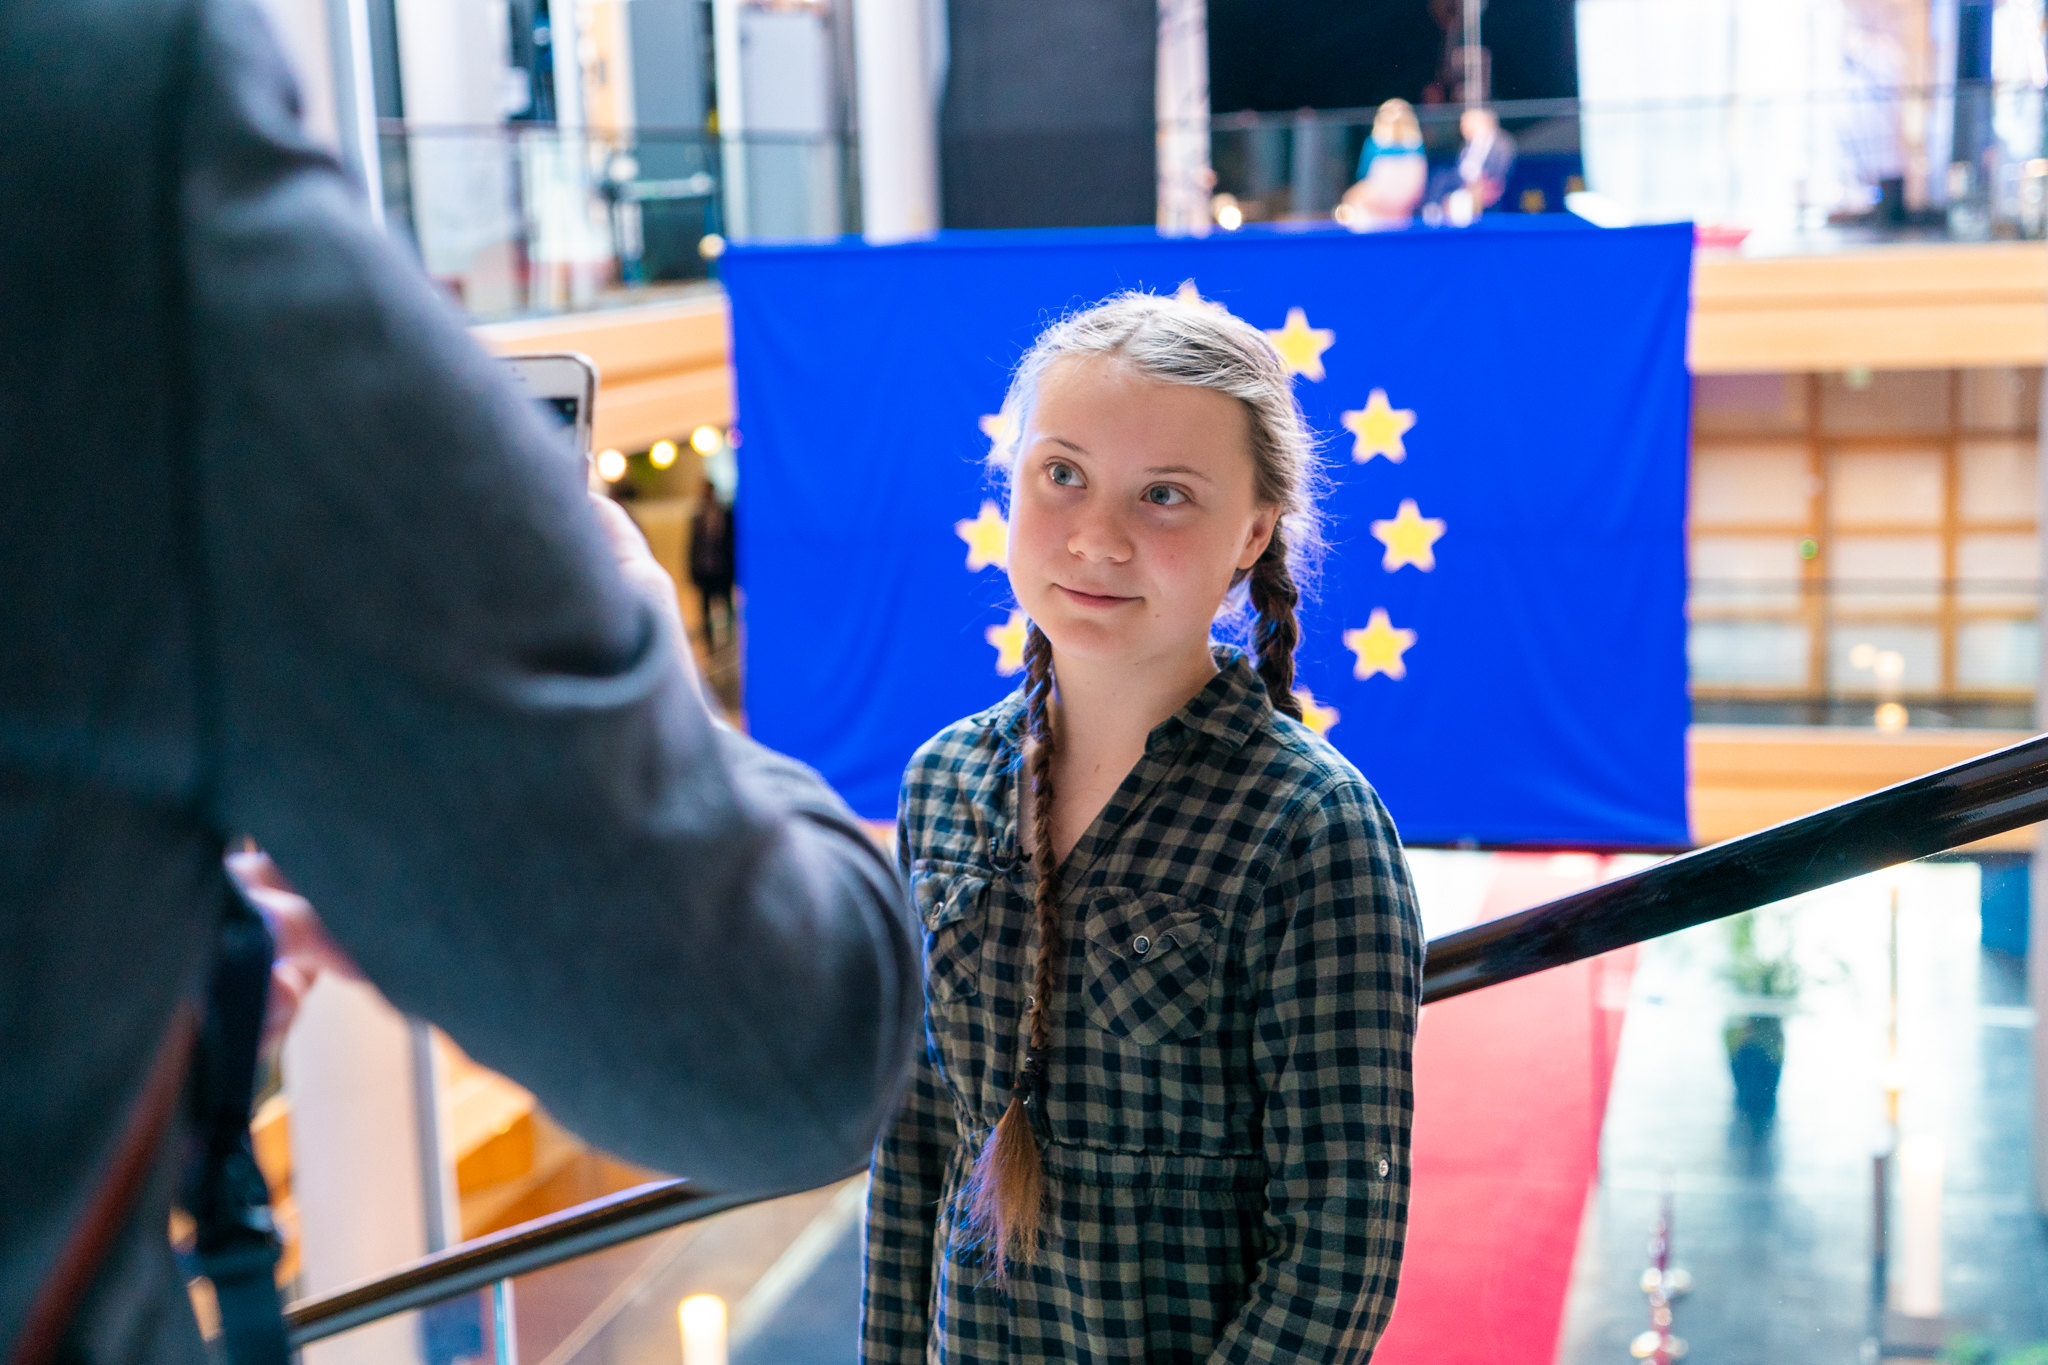 851px version of Greta-Thunberg.jpg